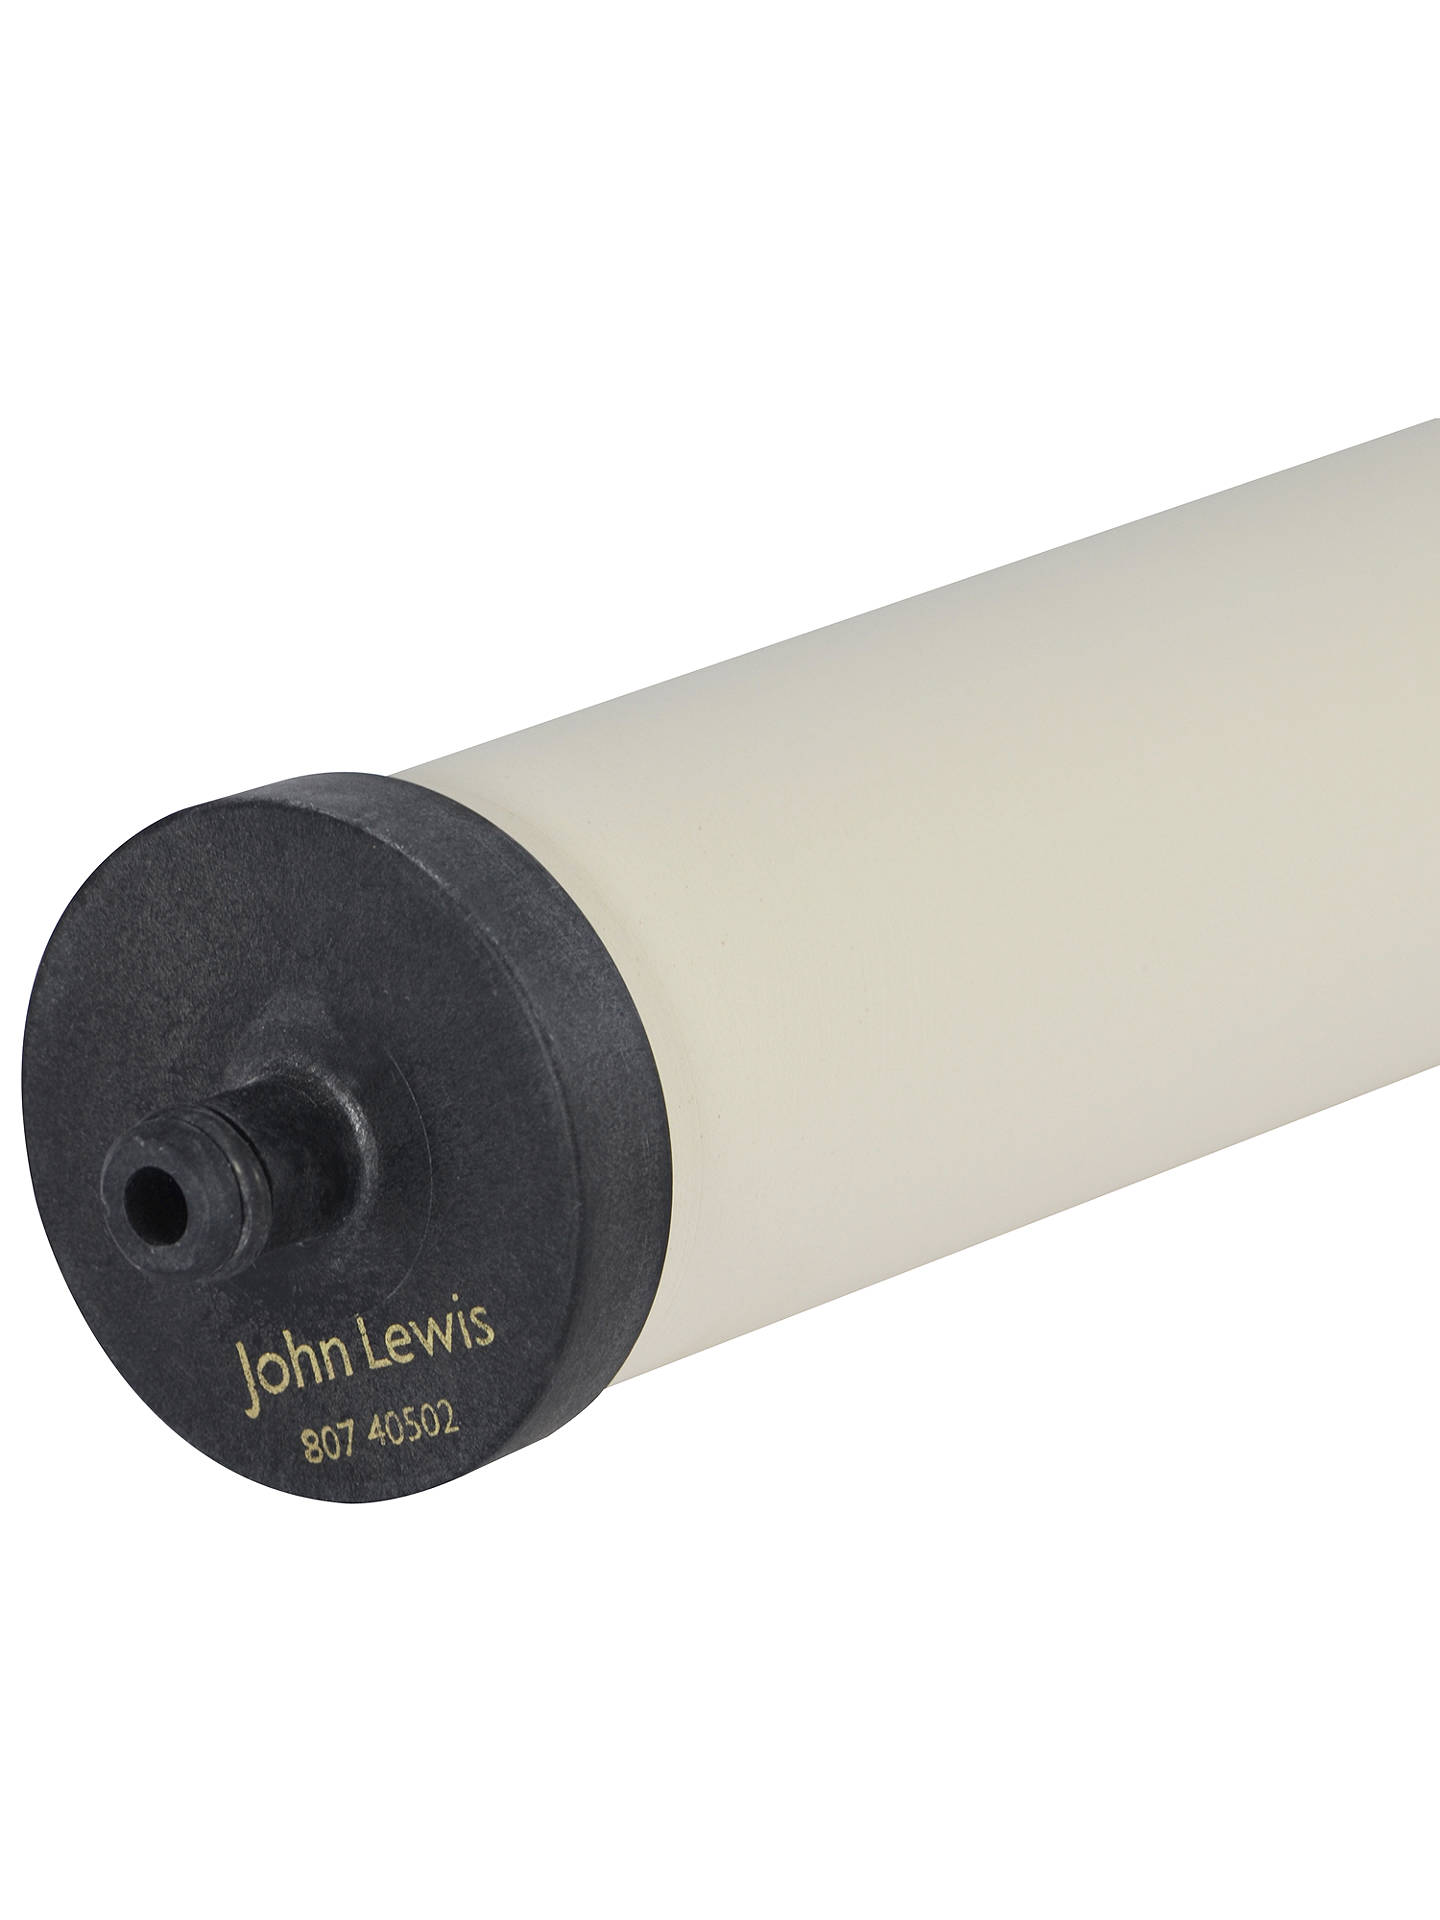 Buy John Lewis & Partners Ceramic Water Filter Cartridge, Push-Fit Mount Online at johnlewis.com